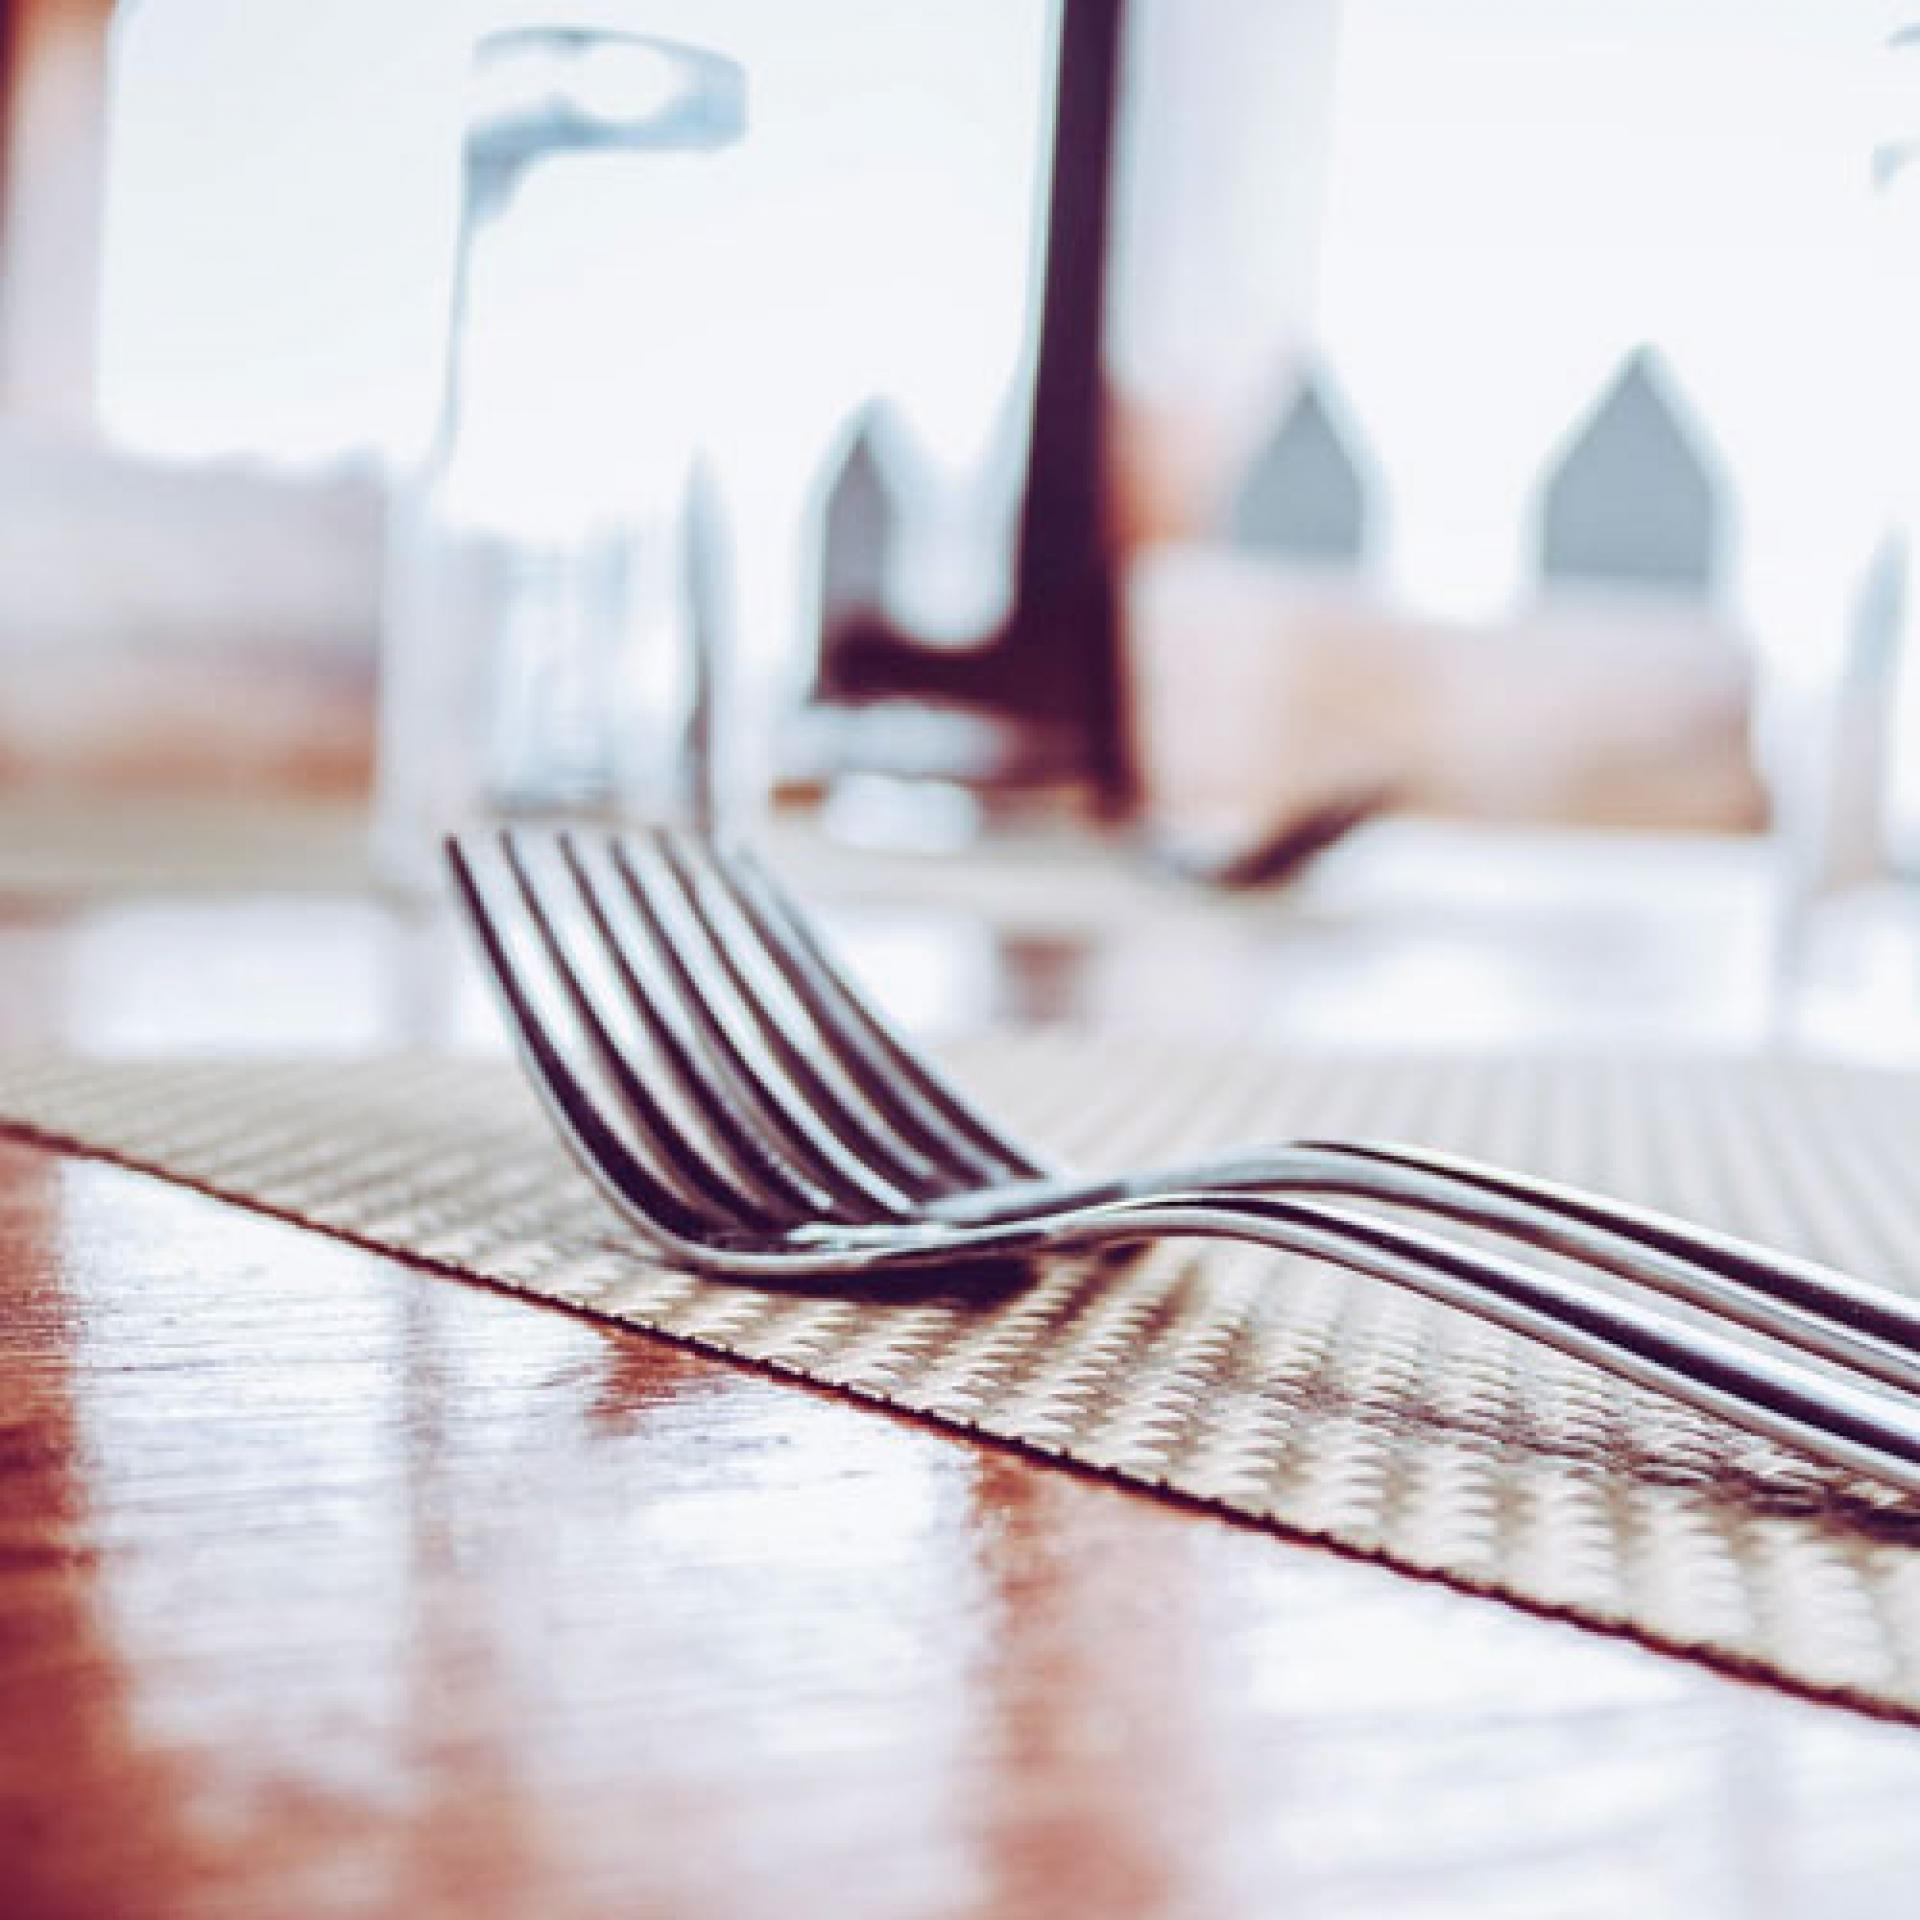 fork on a table